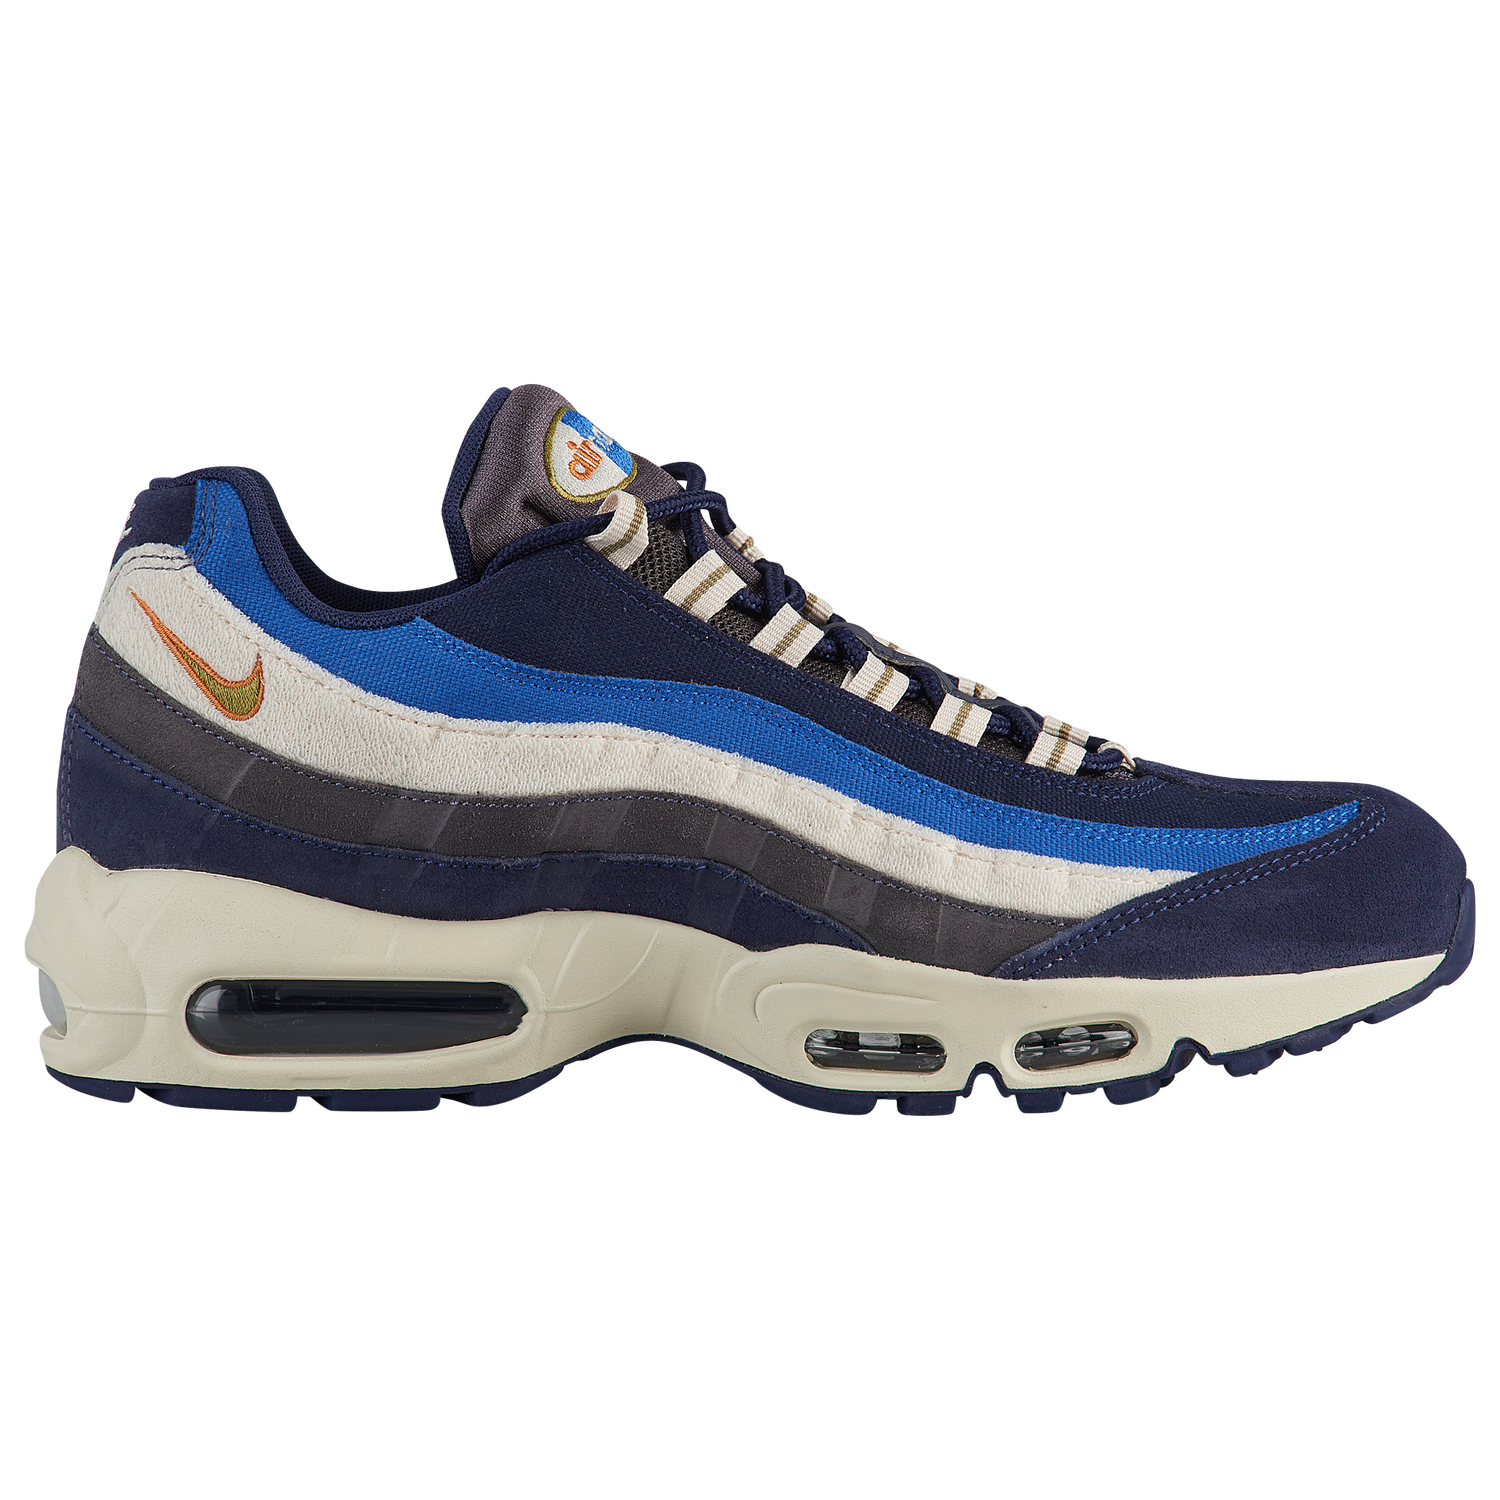 fd0c59ccbfbc3 where to buy air max 95 blackened blue for sale 22eb4 96208